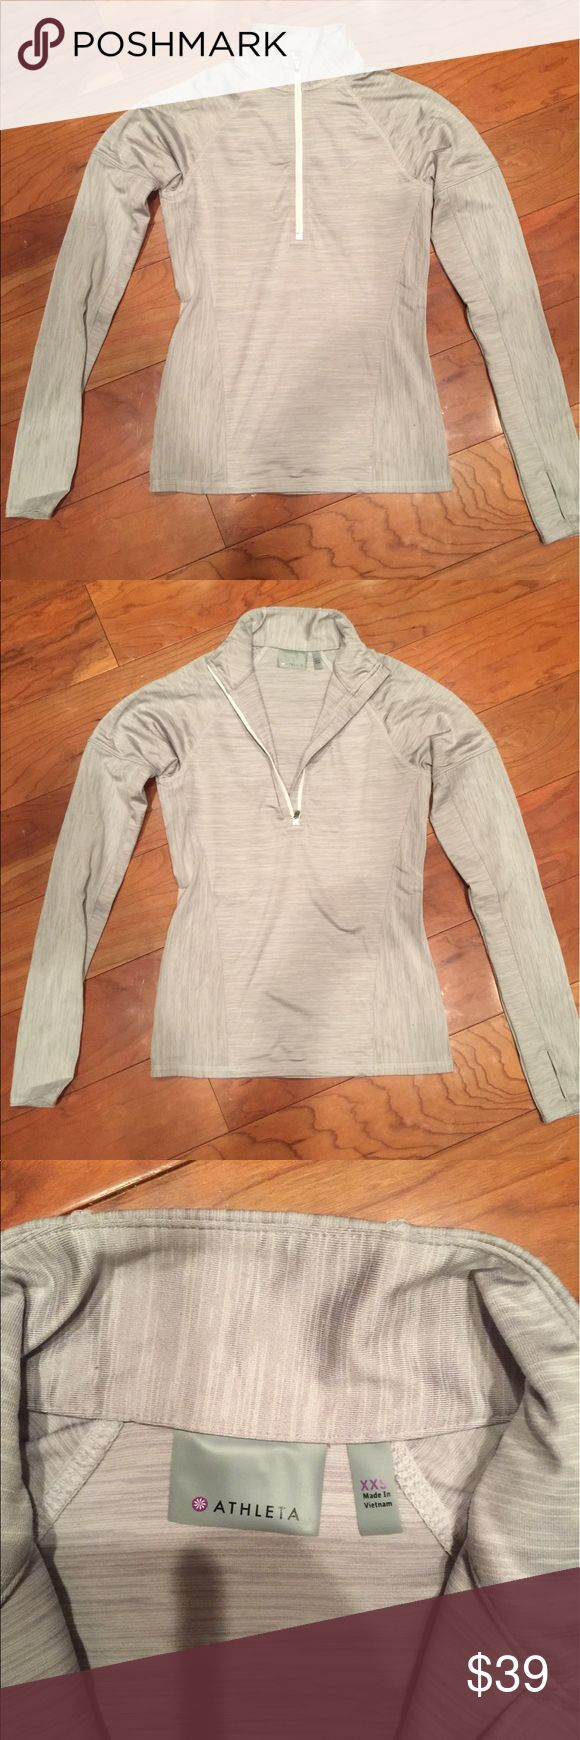 NEVER WORN Athleta grey pullover XXS lk Lululemon Lululemon style in a NEVER WORN Athleta XXS light grey pullover with a deep zipper and a back pocket zipper and thumb holes. NOT Lululemon. Just named for exposure lululemon athletica Tops Sweatshirts & Hoodies